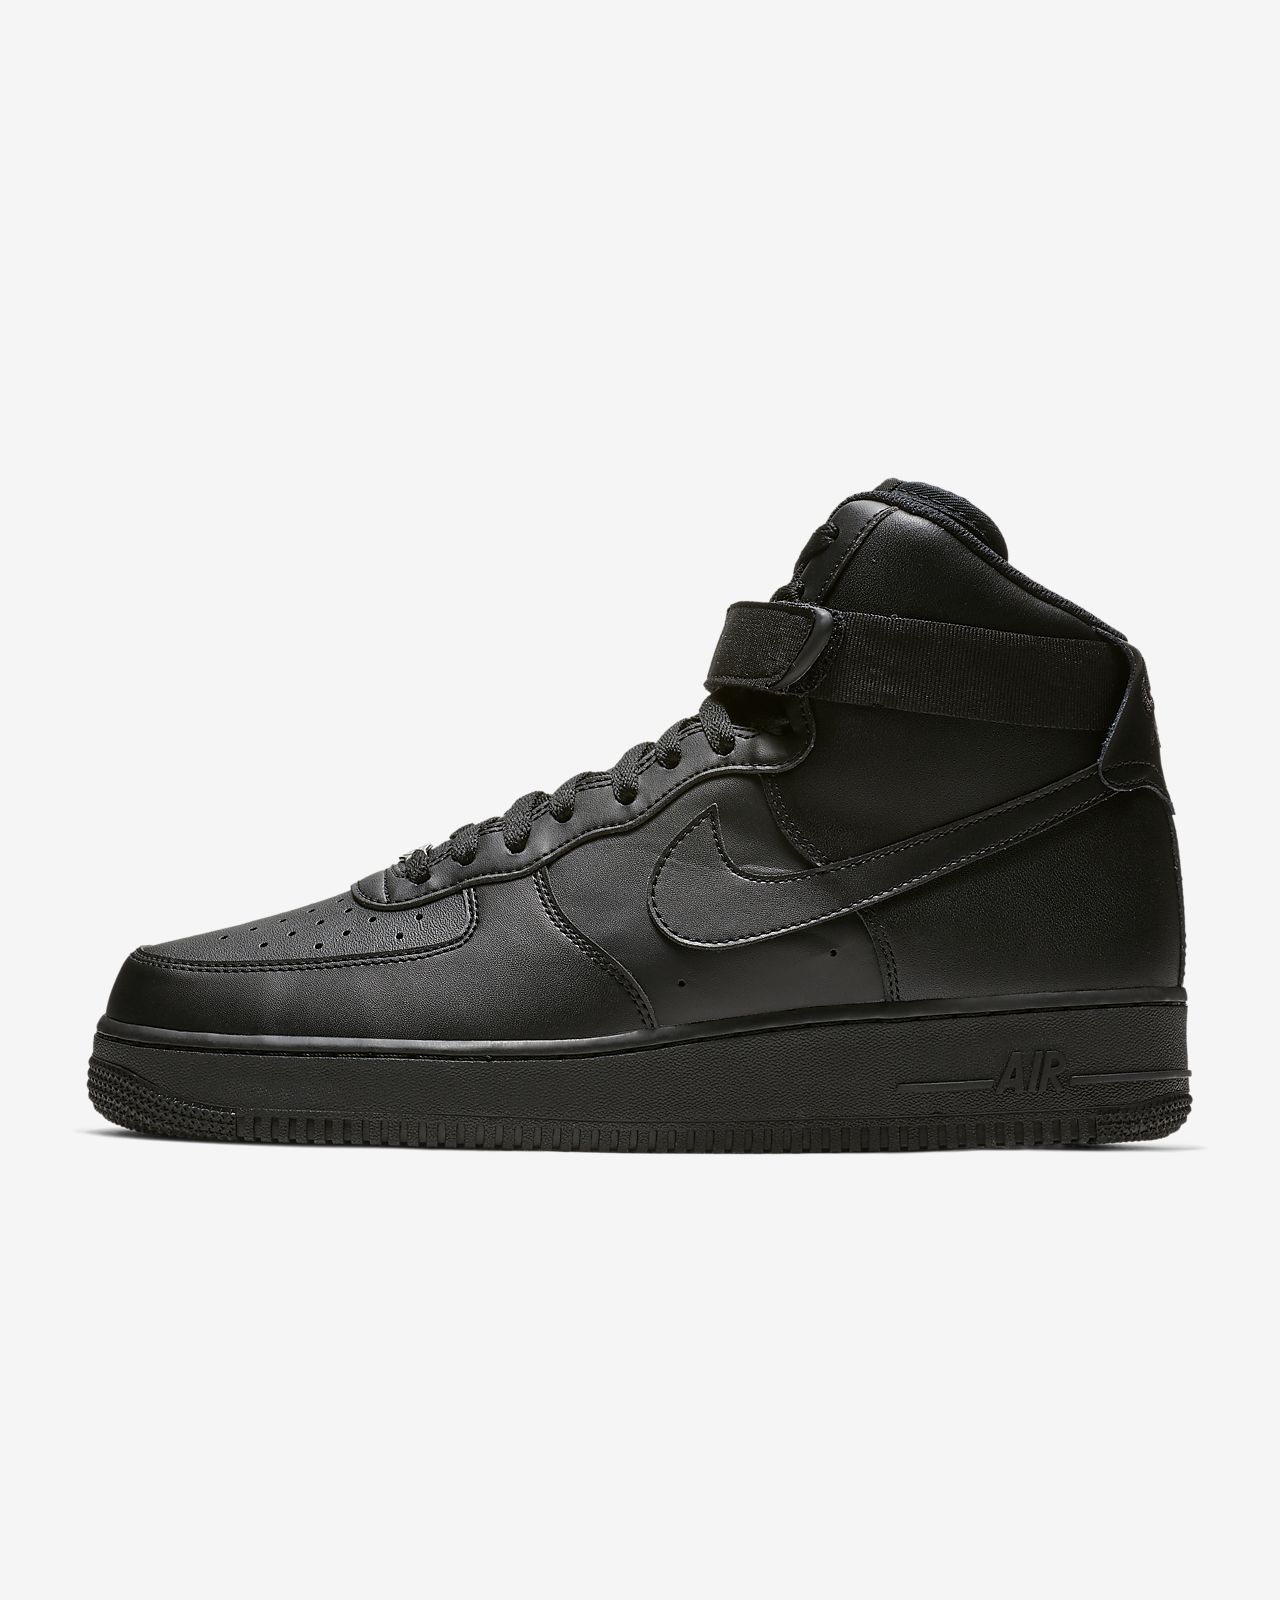 139ae5297a762e Nike Air Force 1 High 07 Men s Shoe. Nike.com